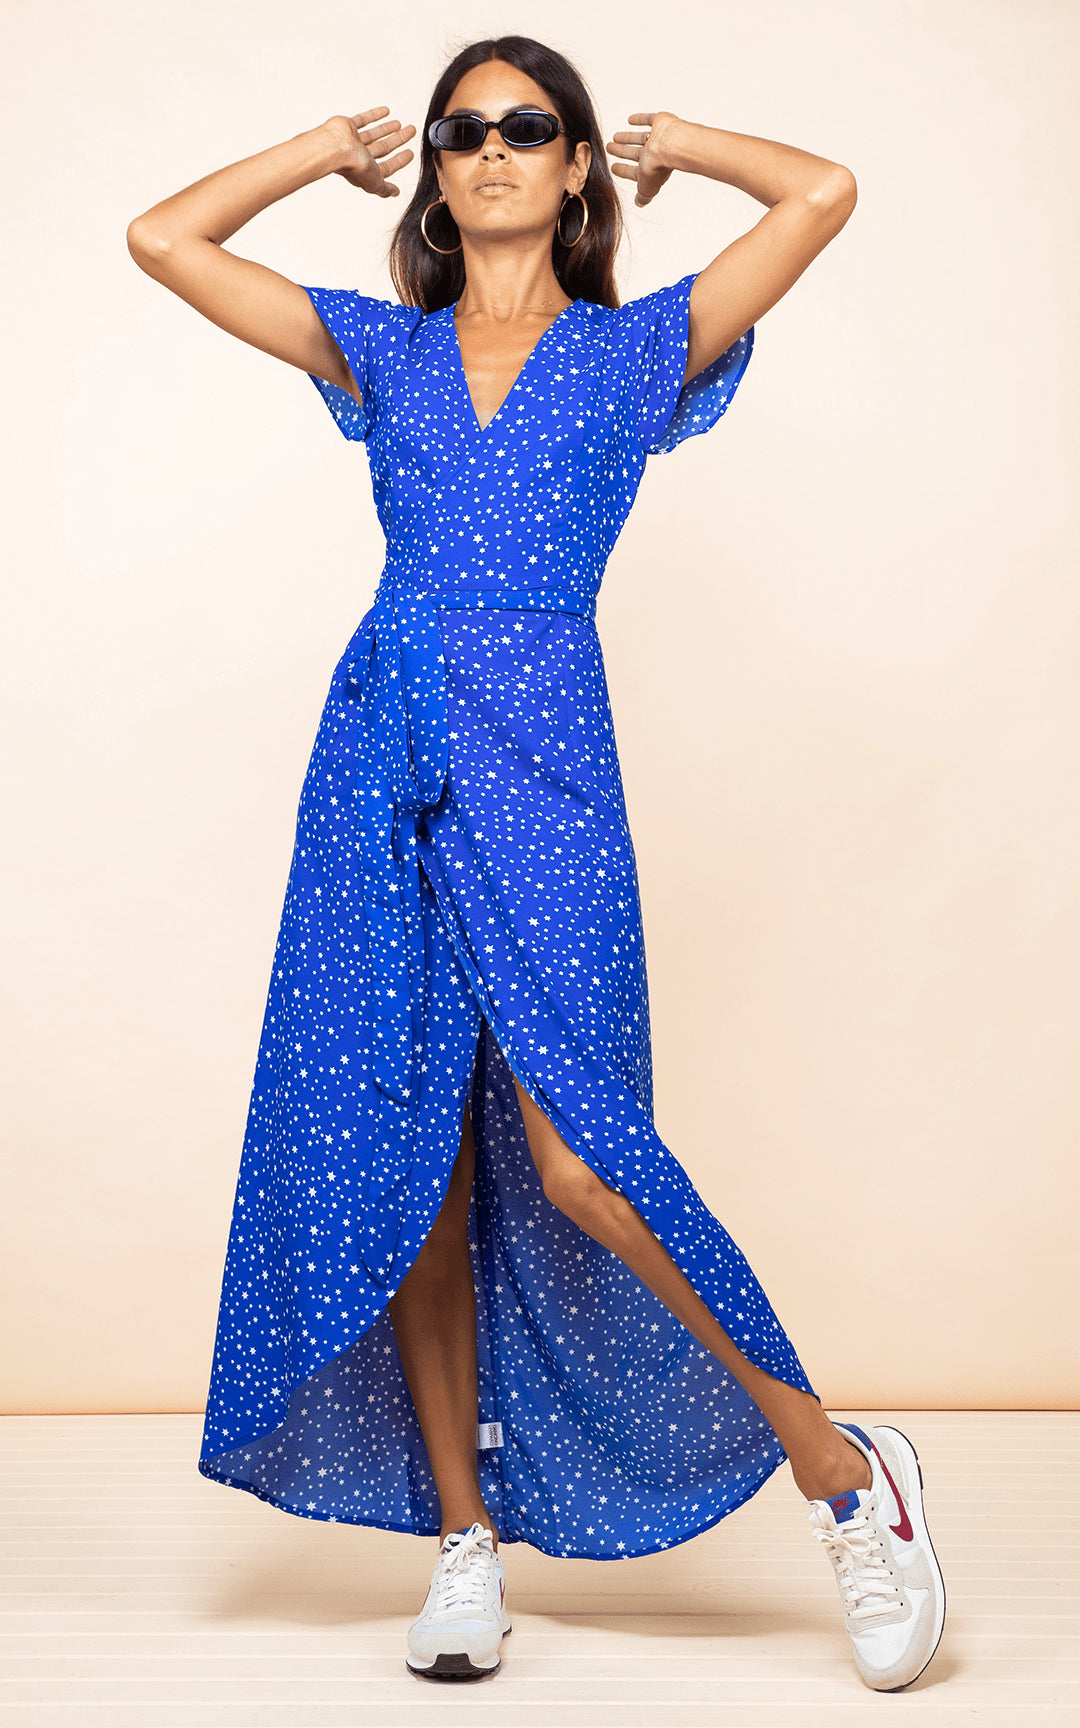 Dancing Leopard model faces forward wearing Cayenne Dress in blue star print with trainers hands up in the air